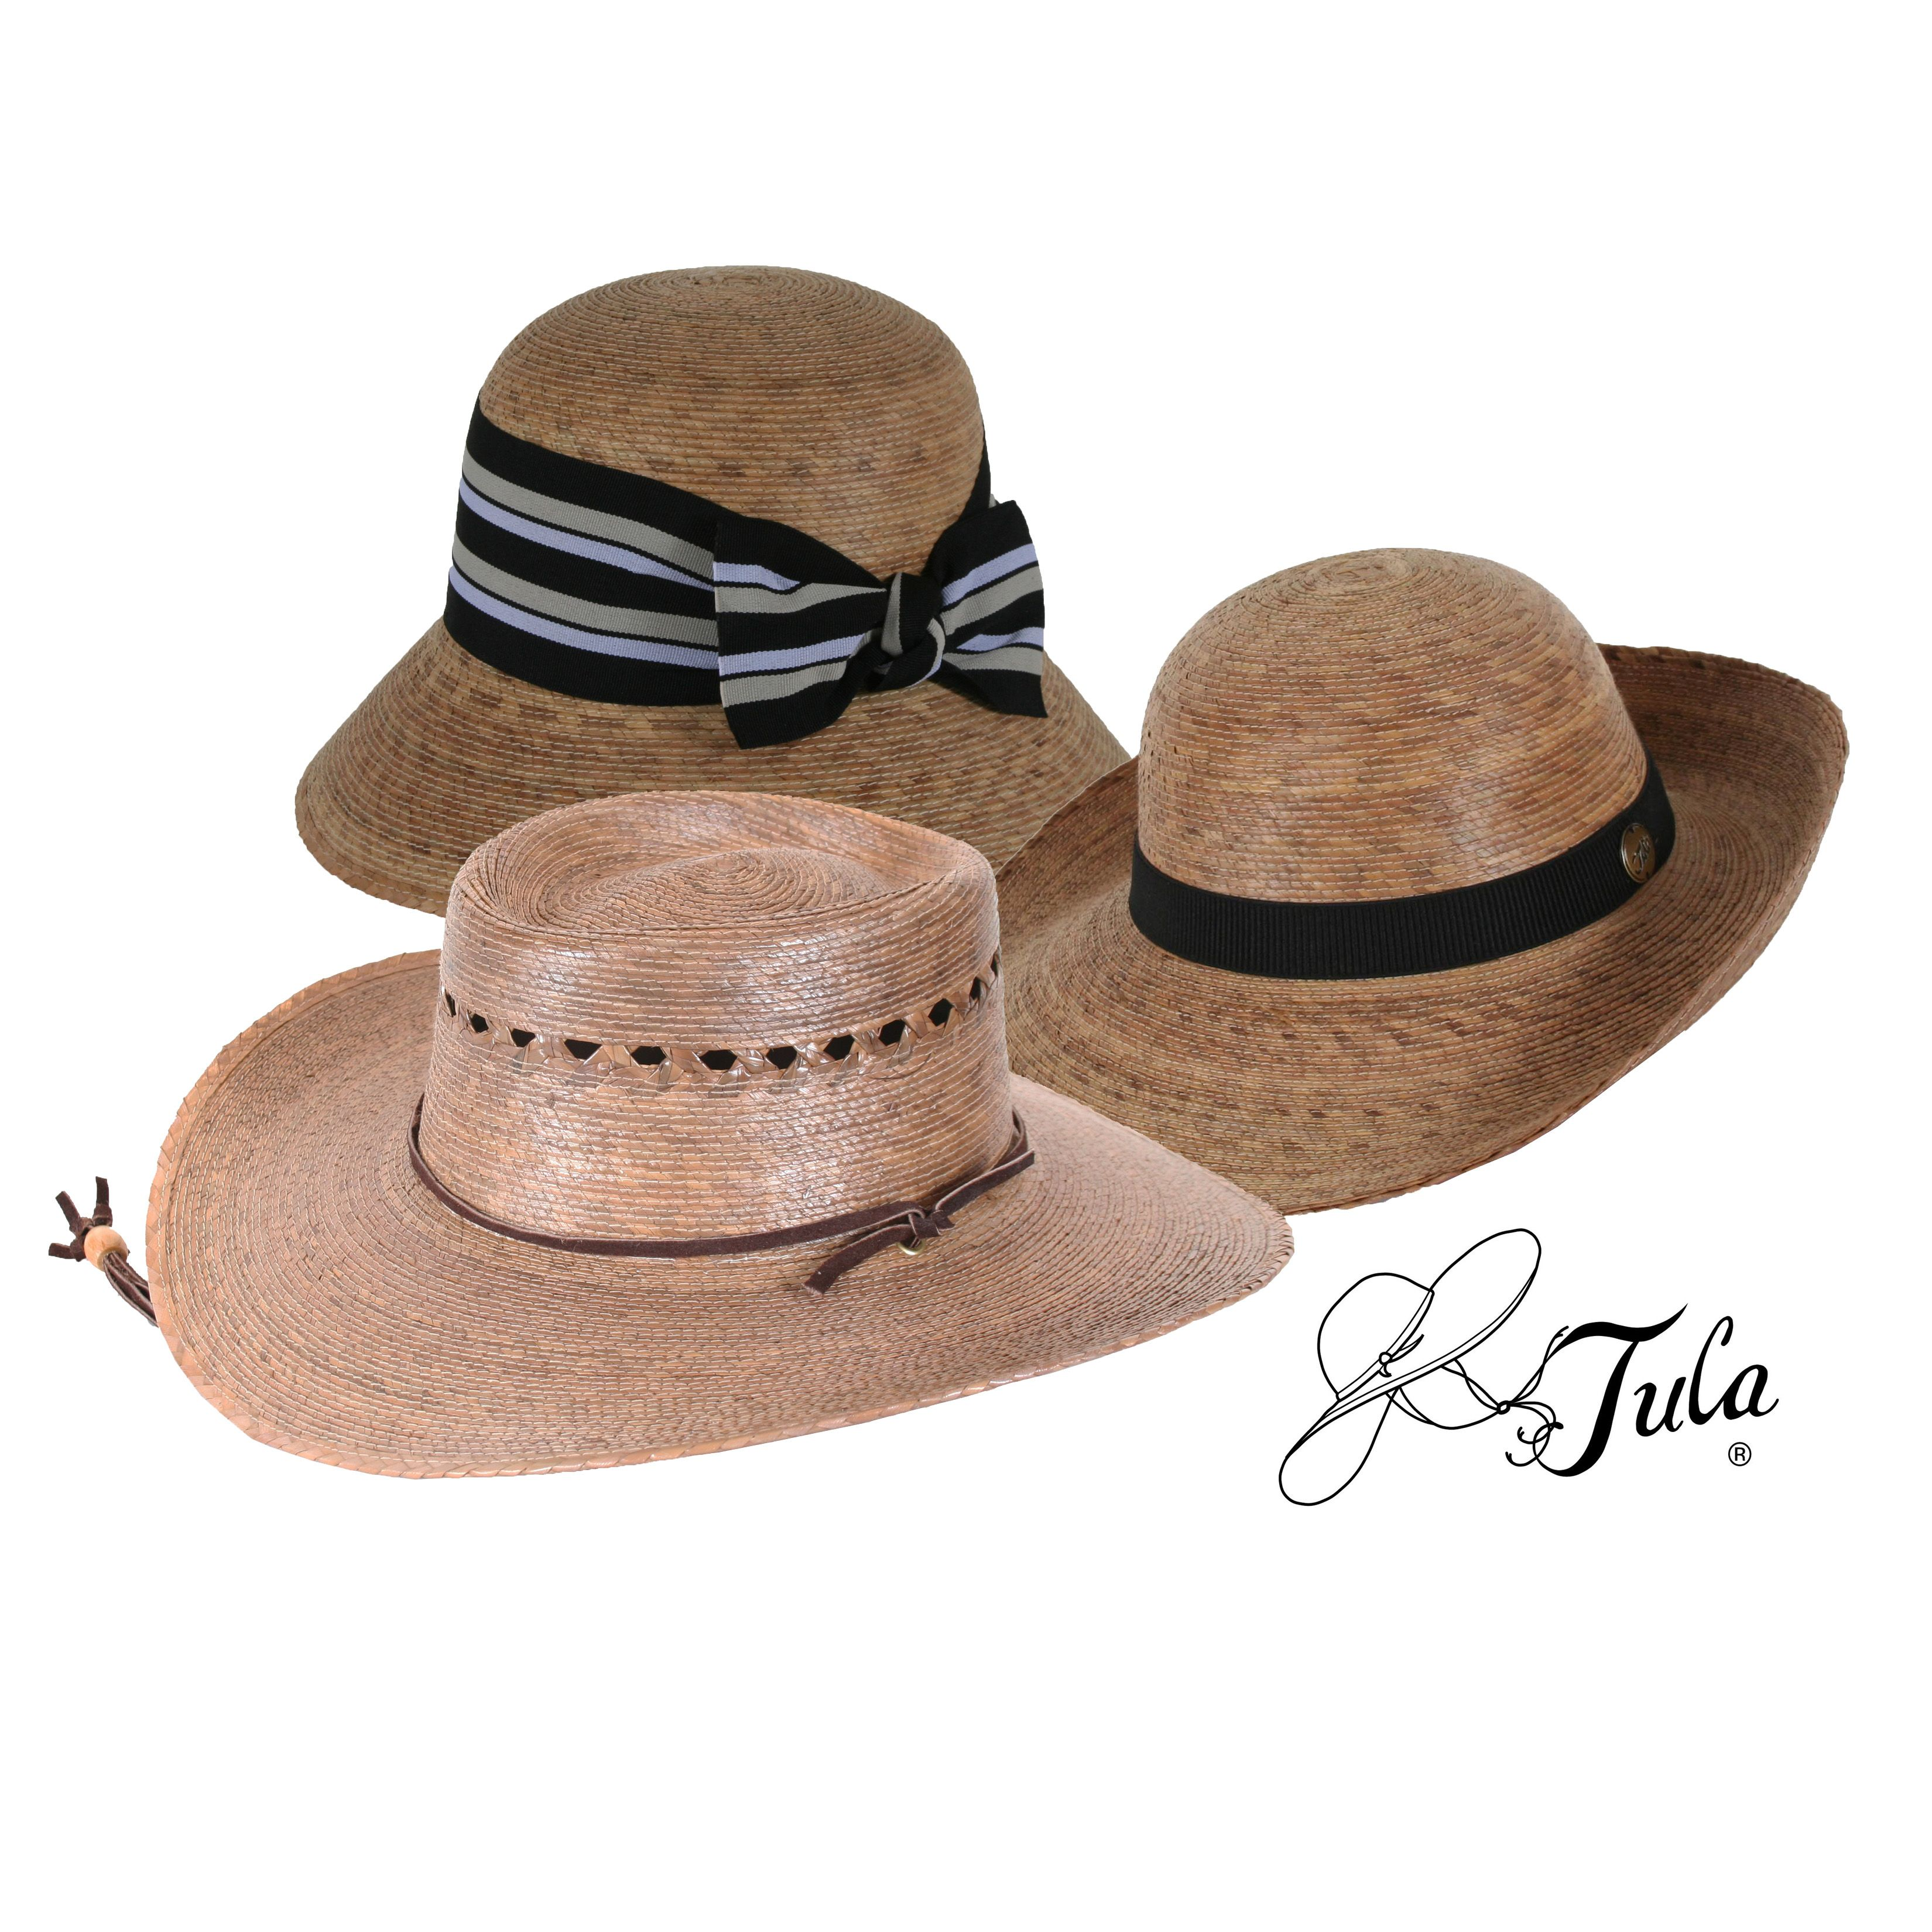 3e9f381c Just a few of the lovely sun protective hats by Tula. Styles for men ...